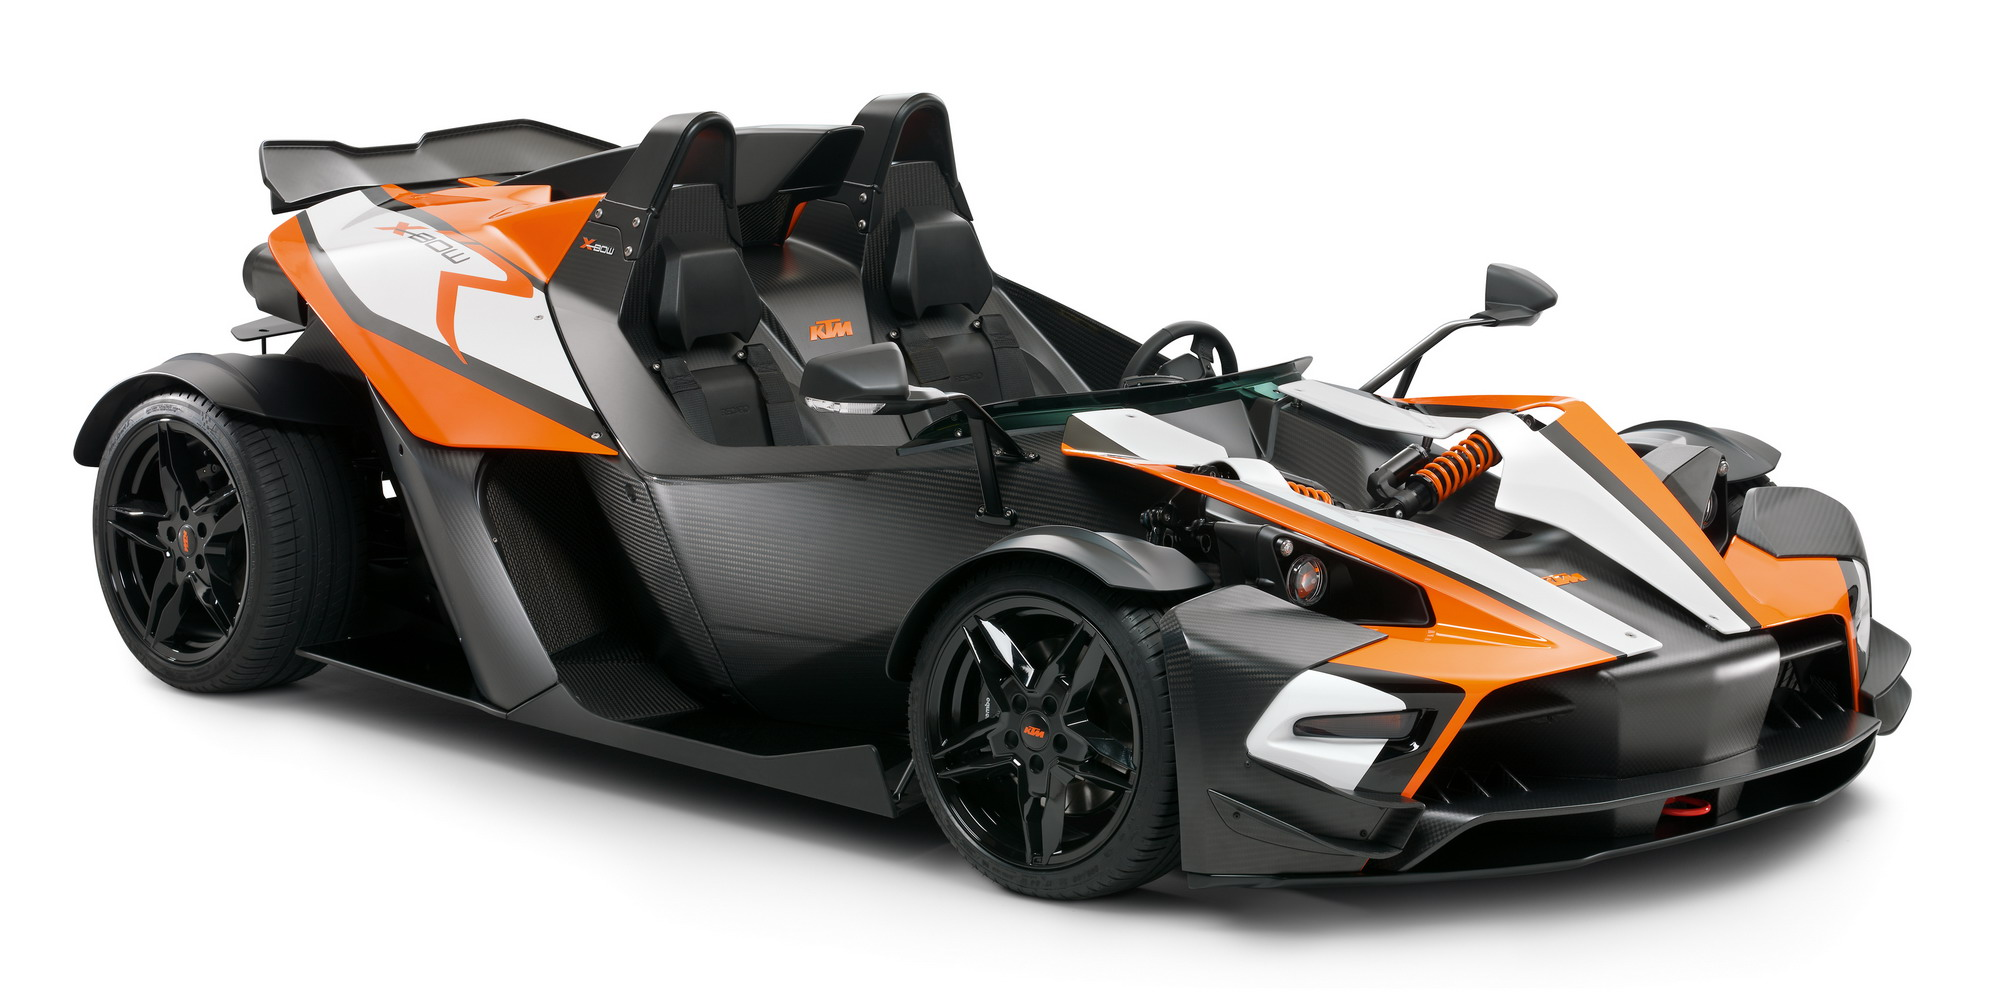 2011 ktm x bow r gallery 402848 top speed. Black Bedroom Furniture Sets. Home Design Ideas